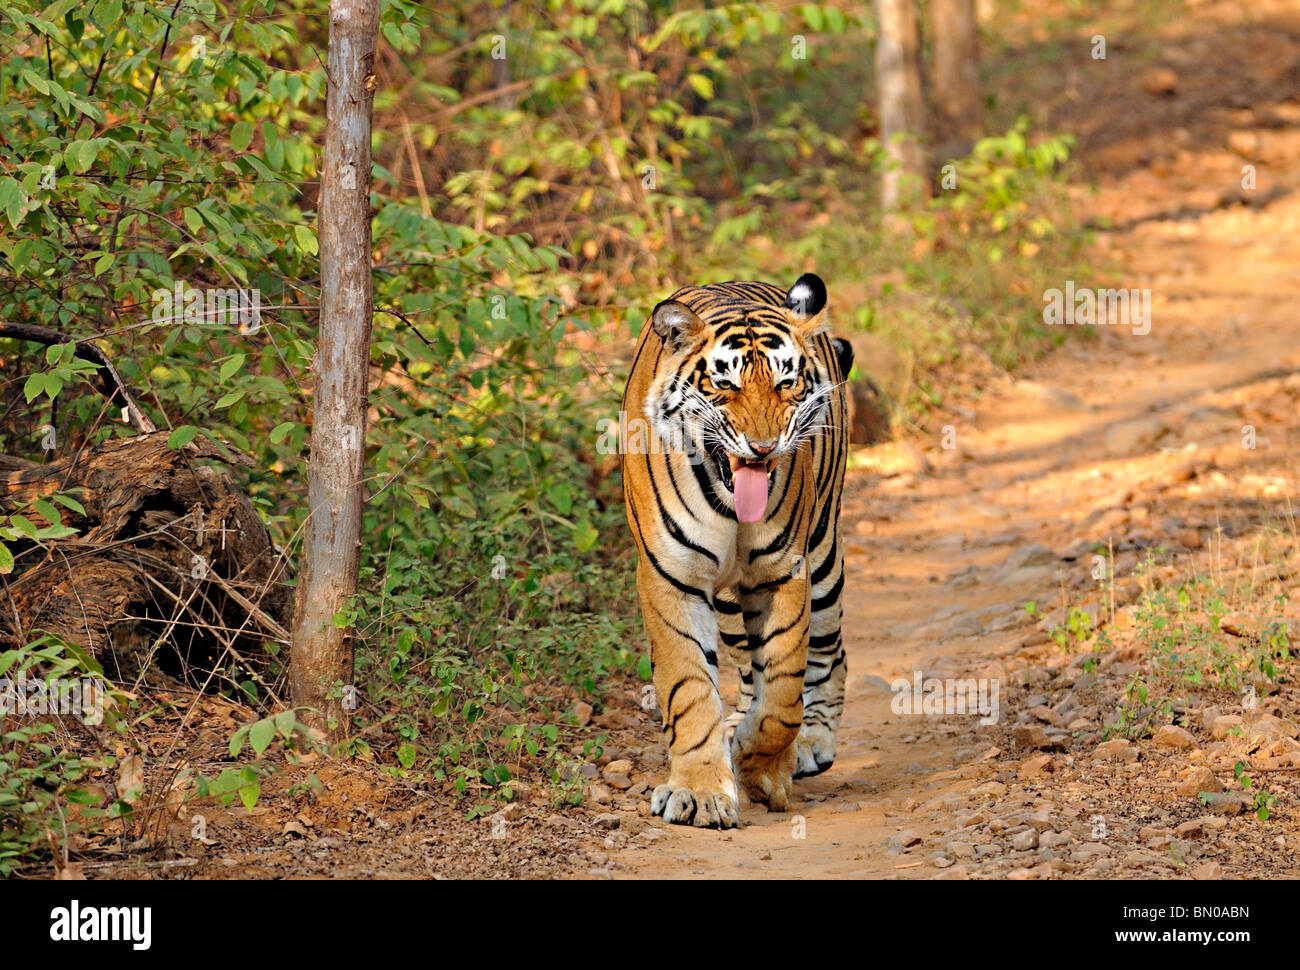 Tiger walking on a road in Ranthambhore national park, India - Stock Image